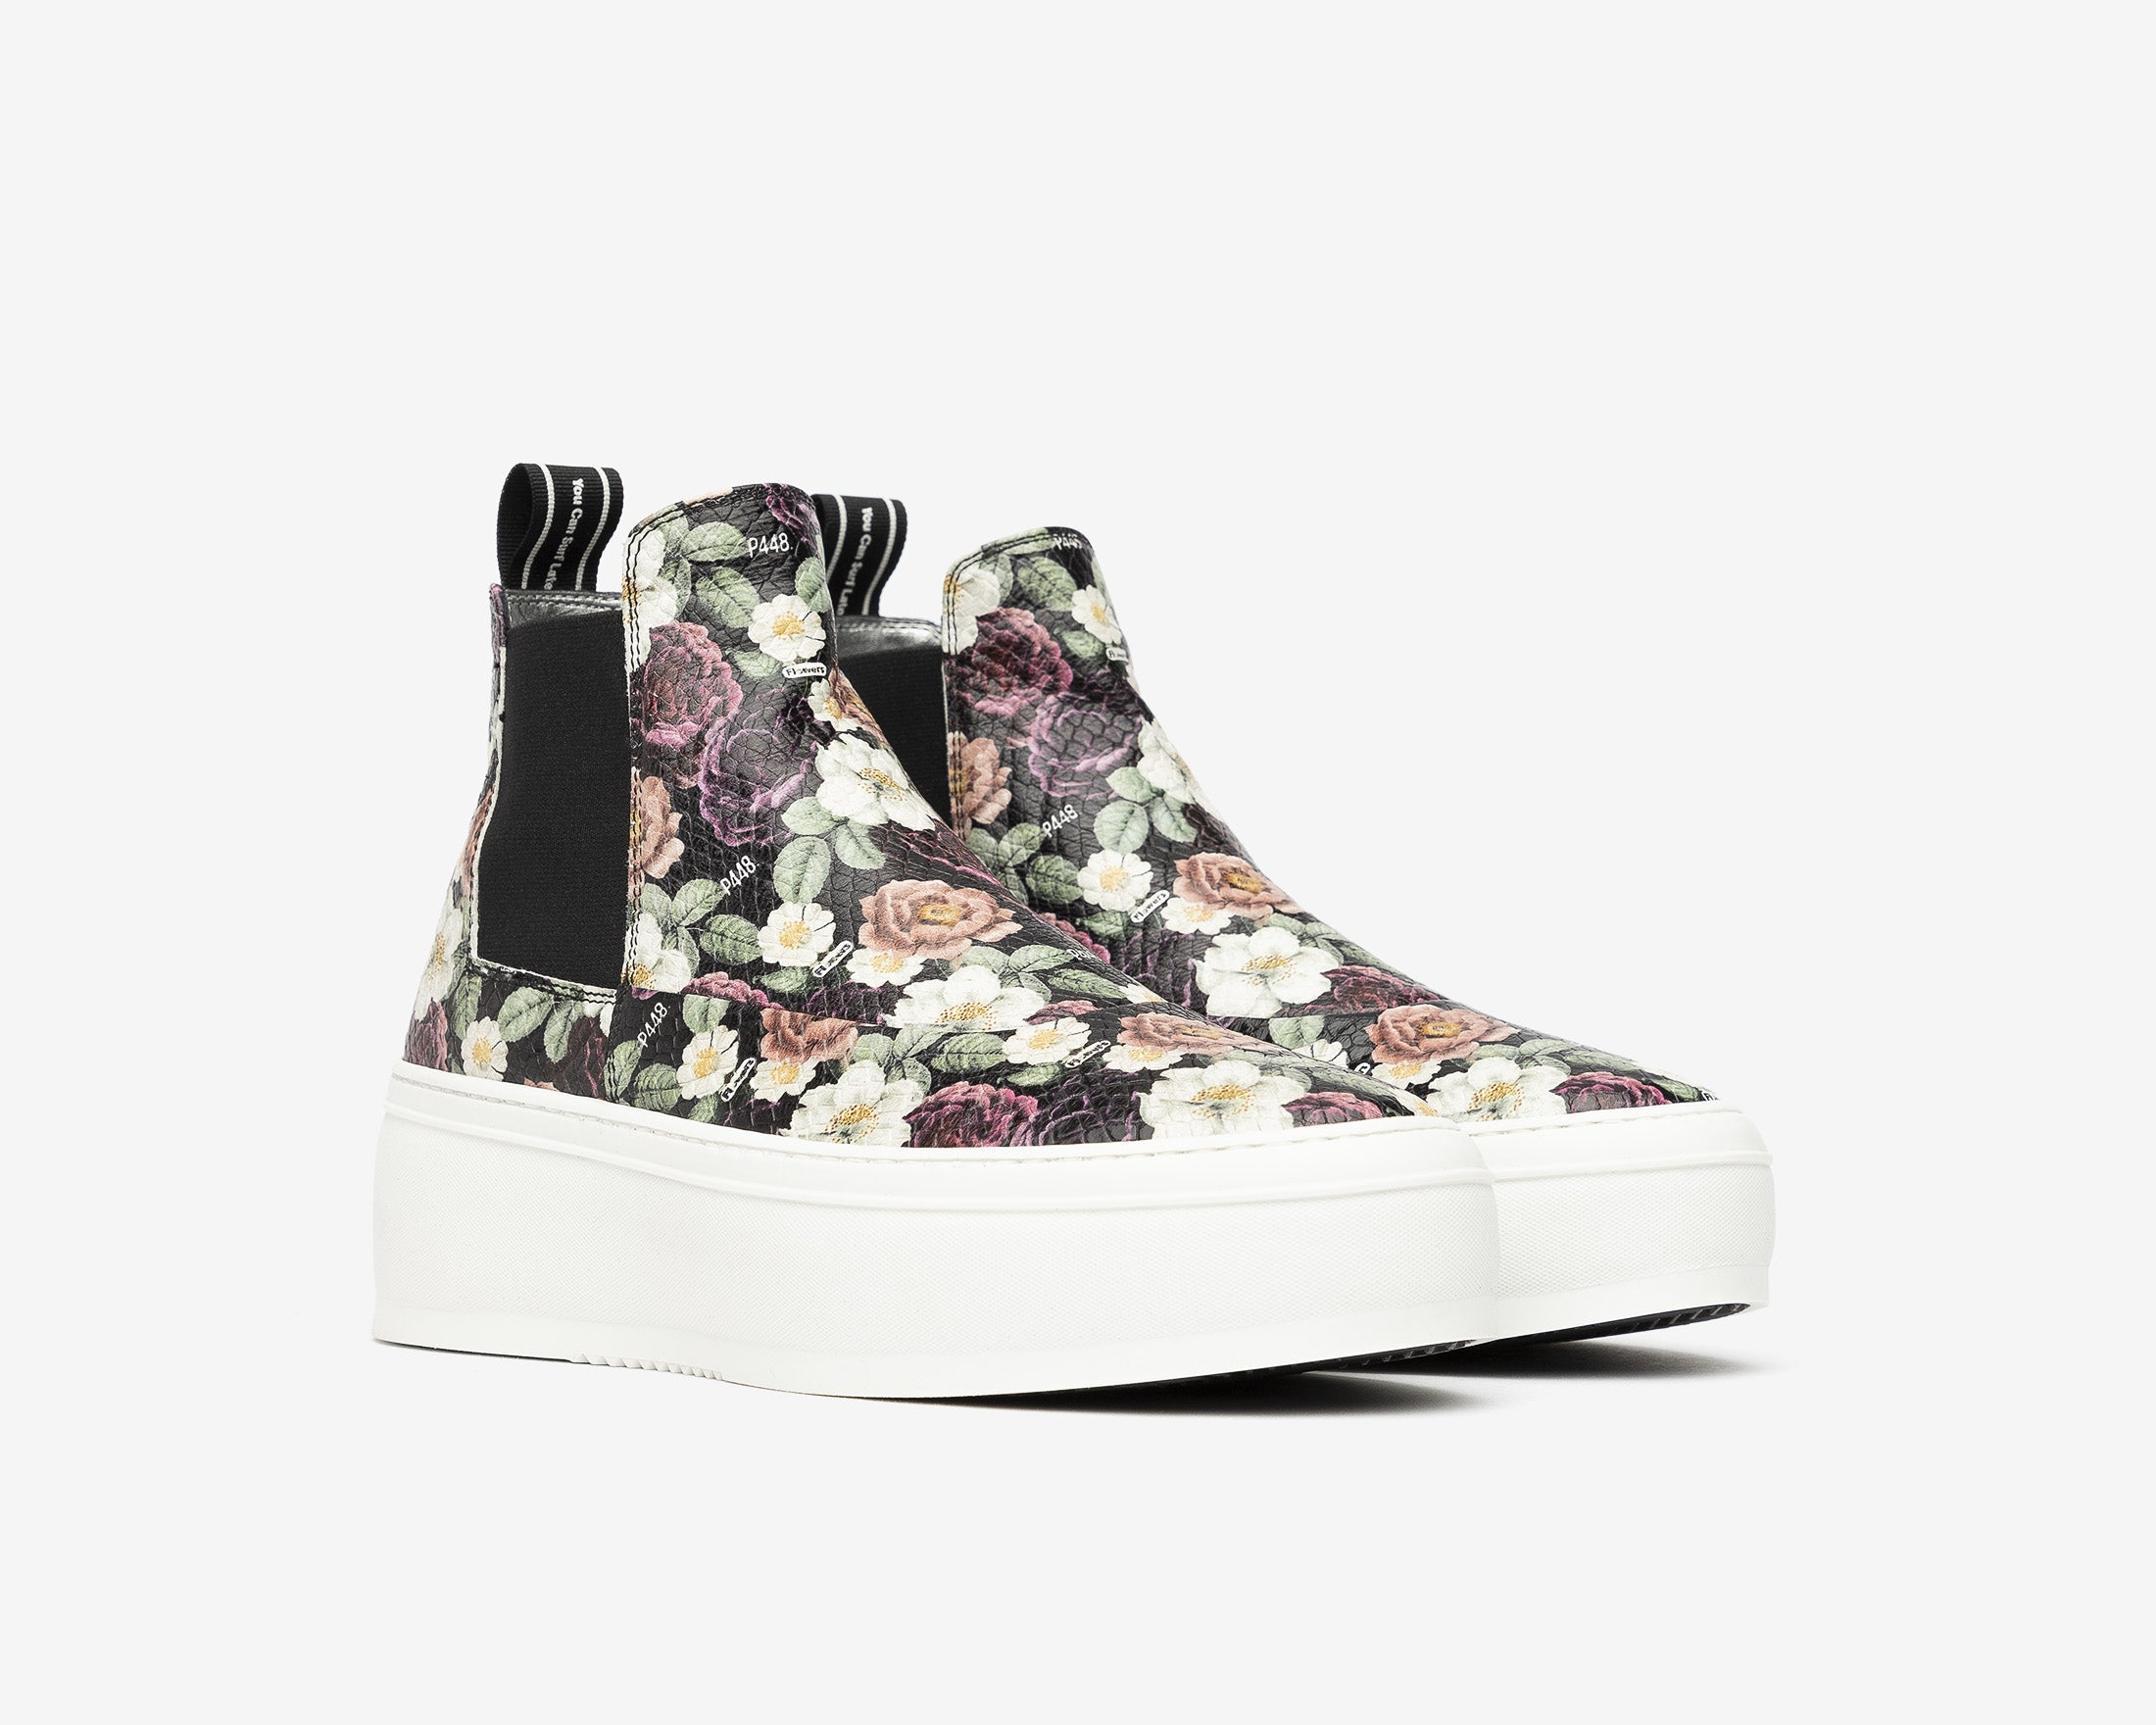 Lucy Chunky Platform Sneaker in Flowers - Side